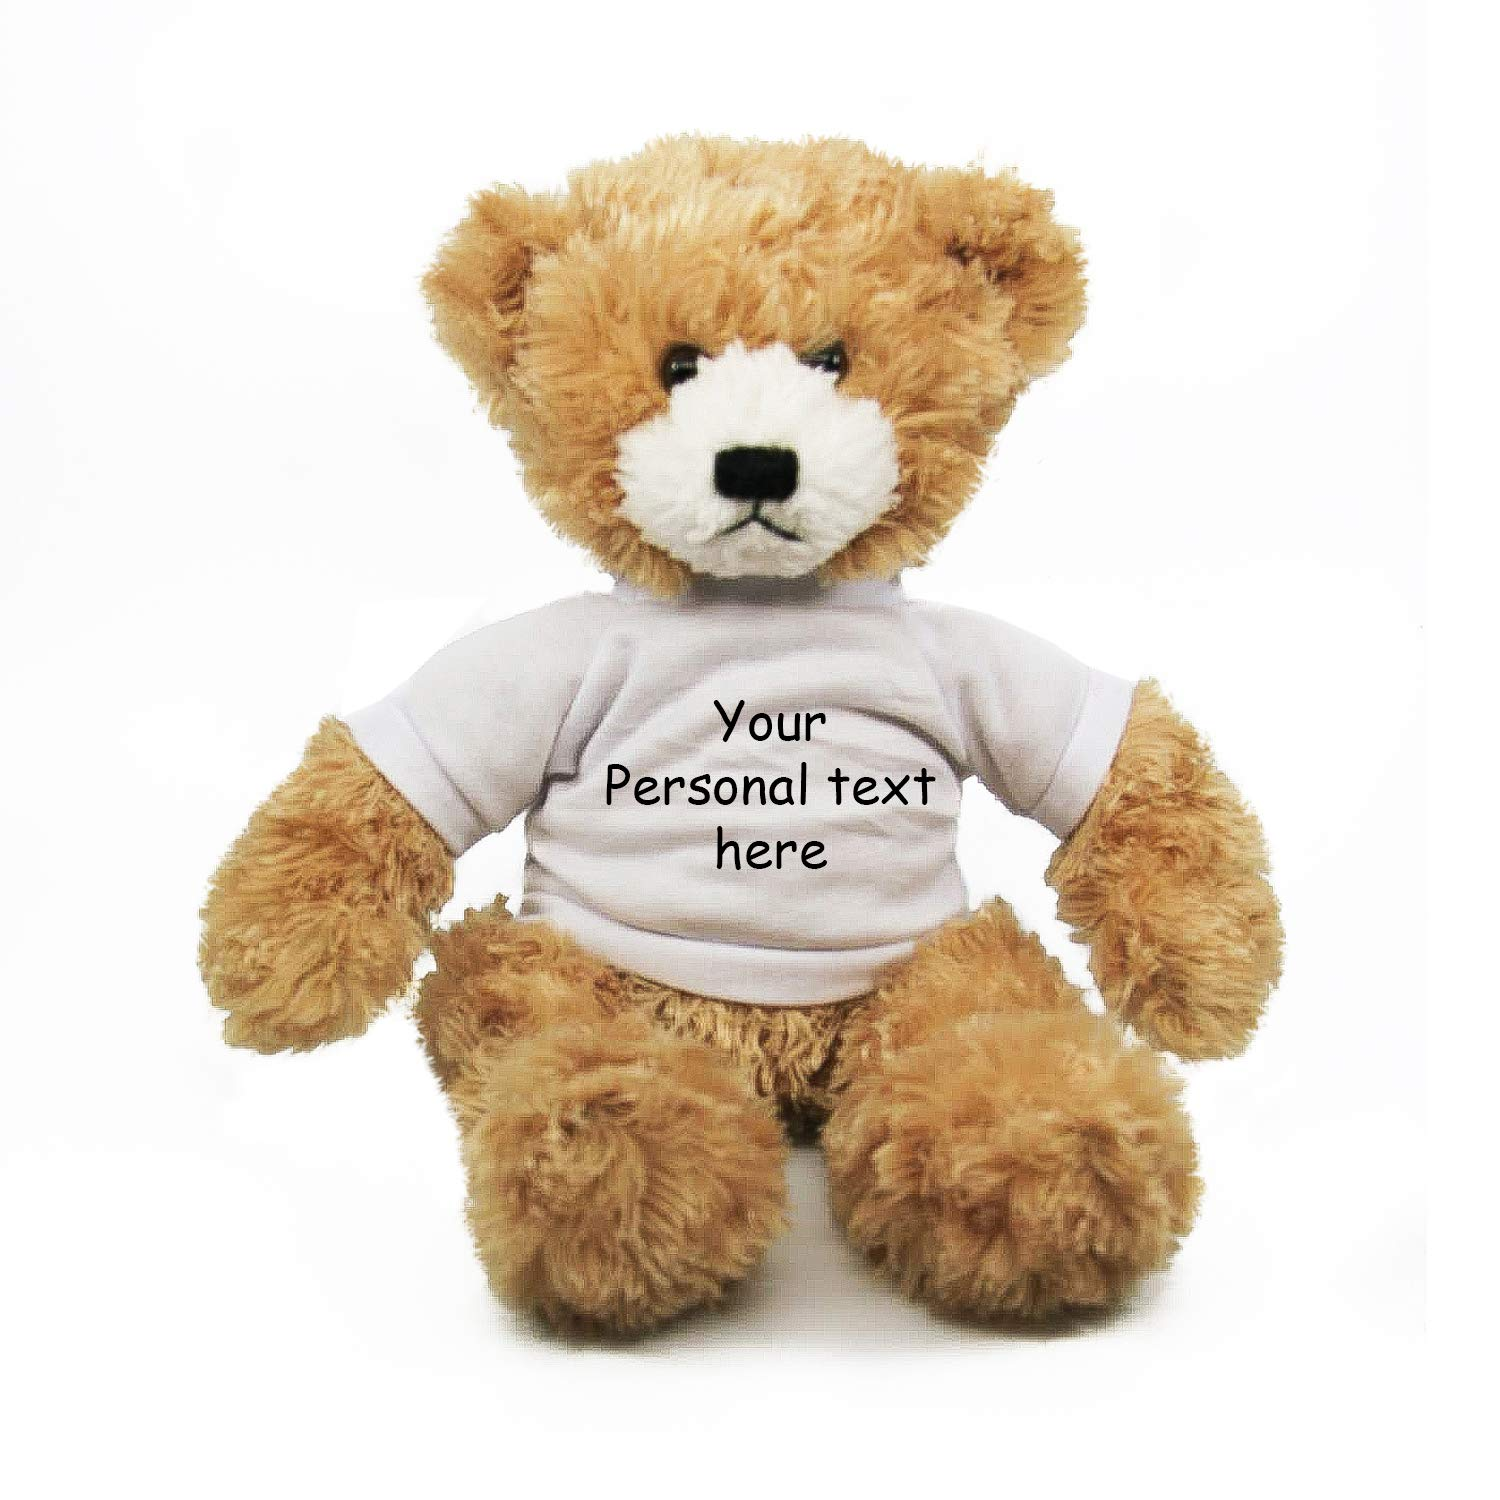 Plushland Beige Brandon Teddy Bear 12 Inch, Stuffed Animal Personalized Gift - Custom Text on Shirt- Great Present for Mothers Day, Valentine Day, Graduation Day, Birthday (White Shirt)